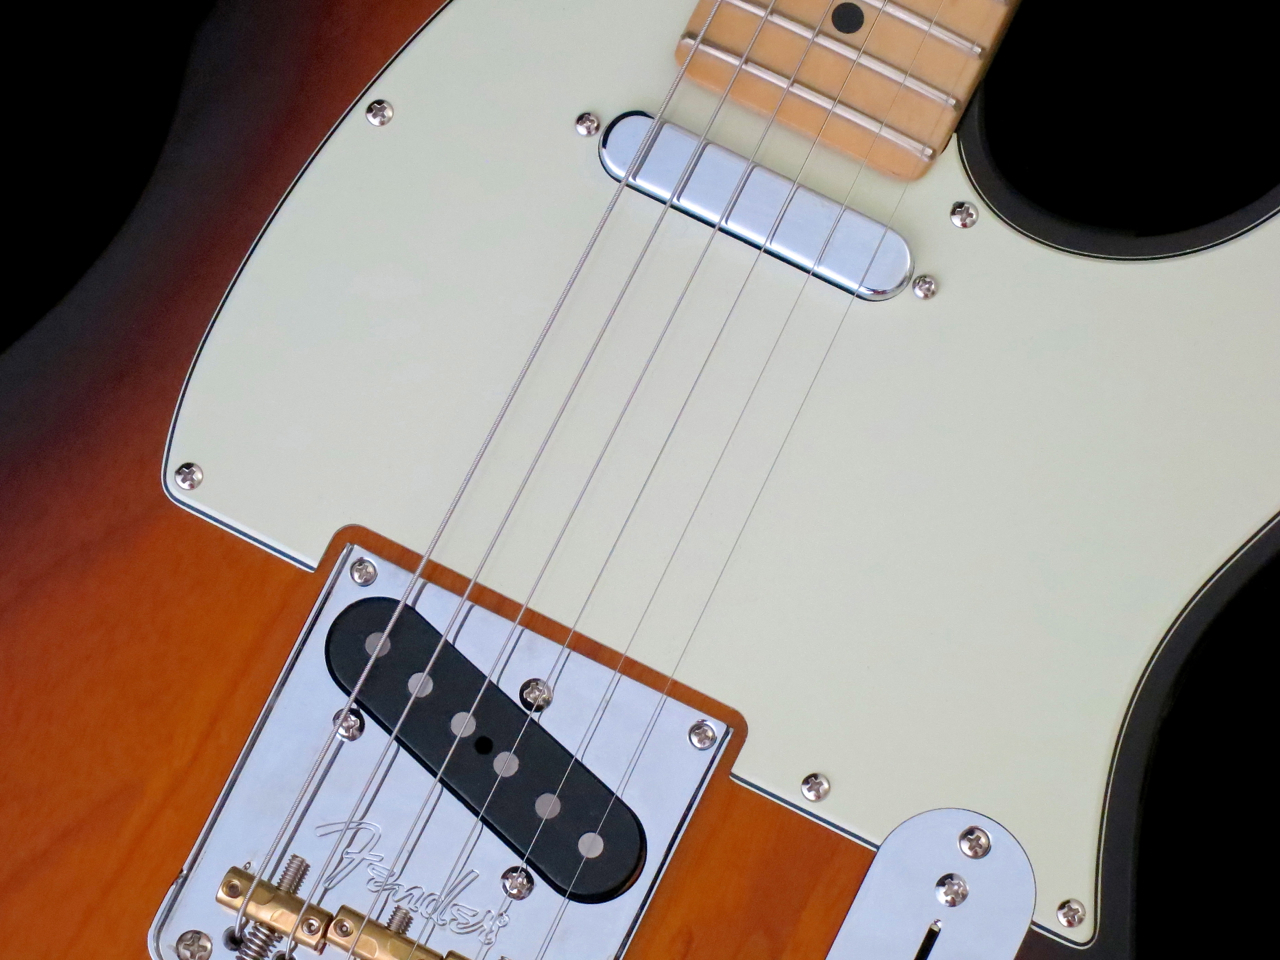 Maaliskuu 2017 Finlands Premier Guitar And Custom Jazz Bass Mod Master Volume Tone Balance Control The V Pickups On Telecaster Both Use Alnico Magnets For Strings Ii Treble